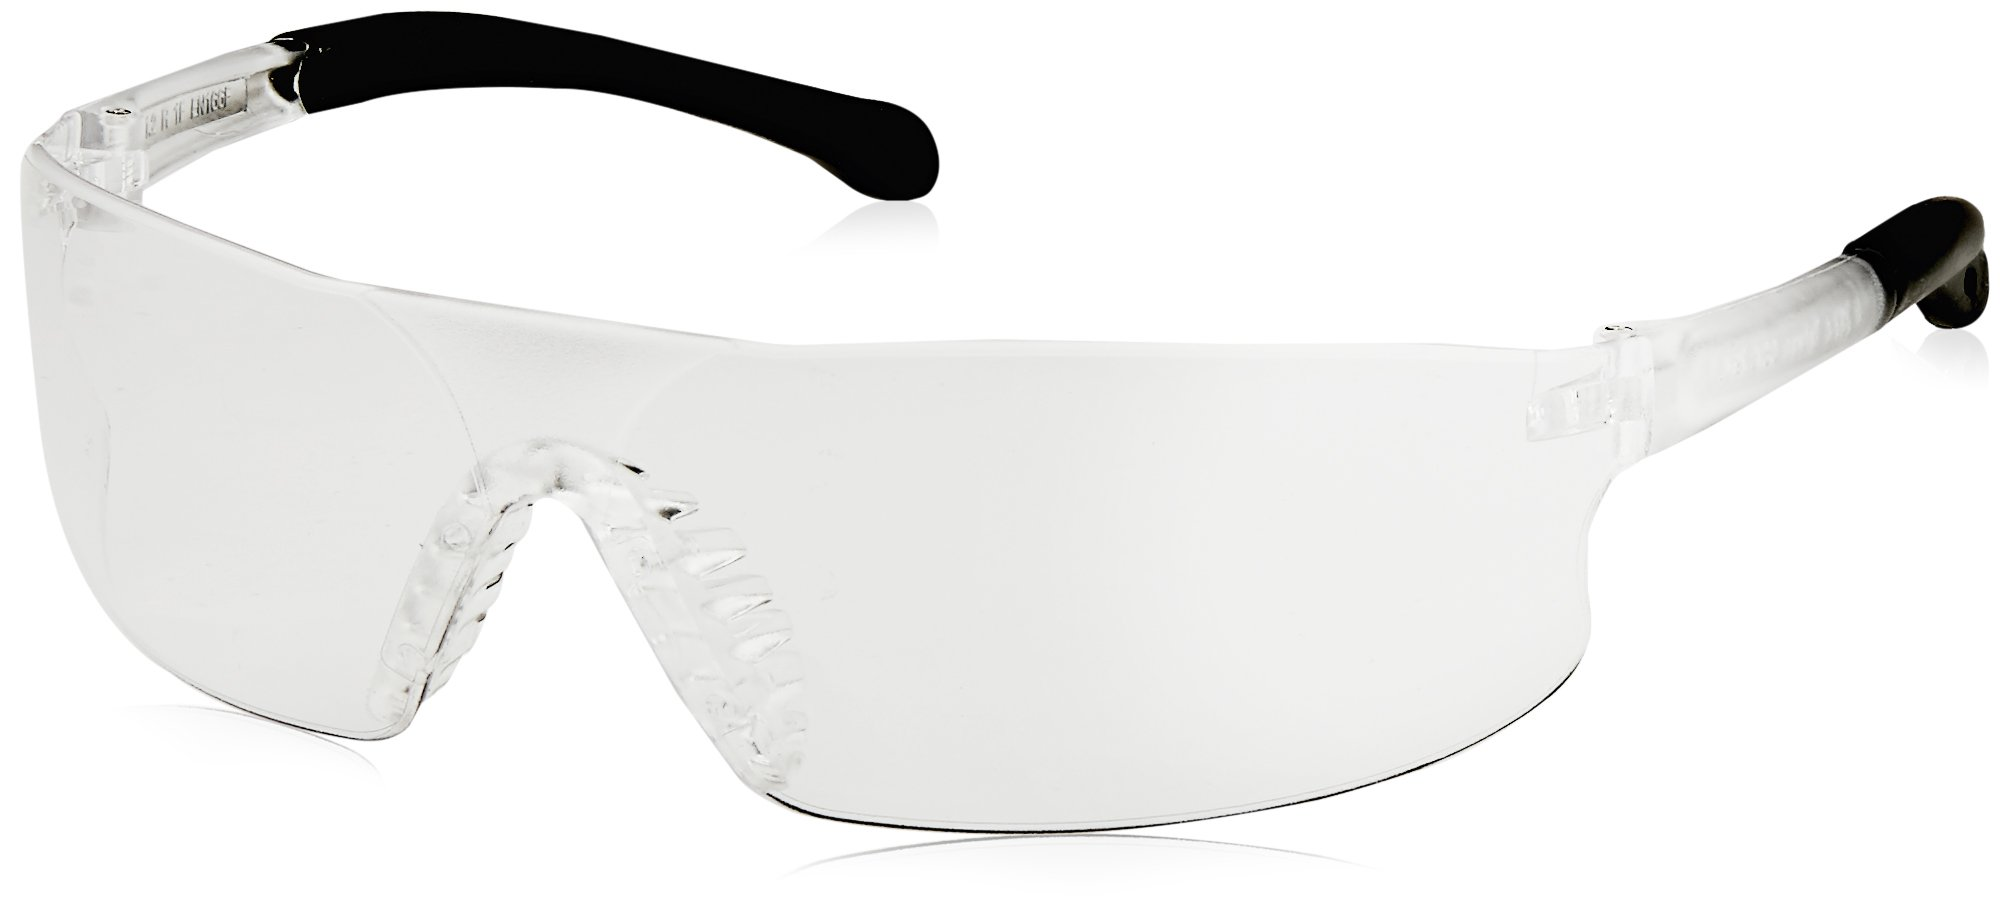 Radians RS1-10 Rad-Sequel Rubber Tipped Lightweight Glasses with Clear Lens